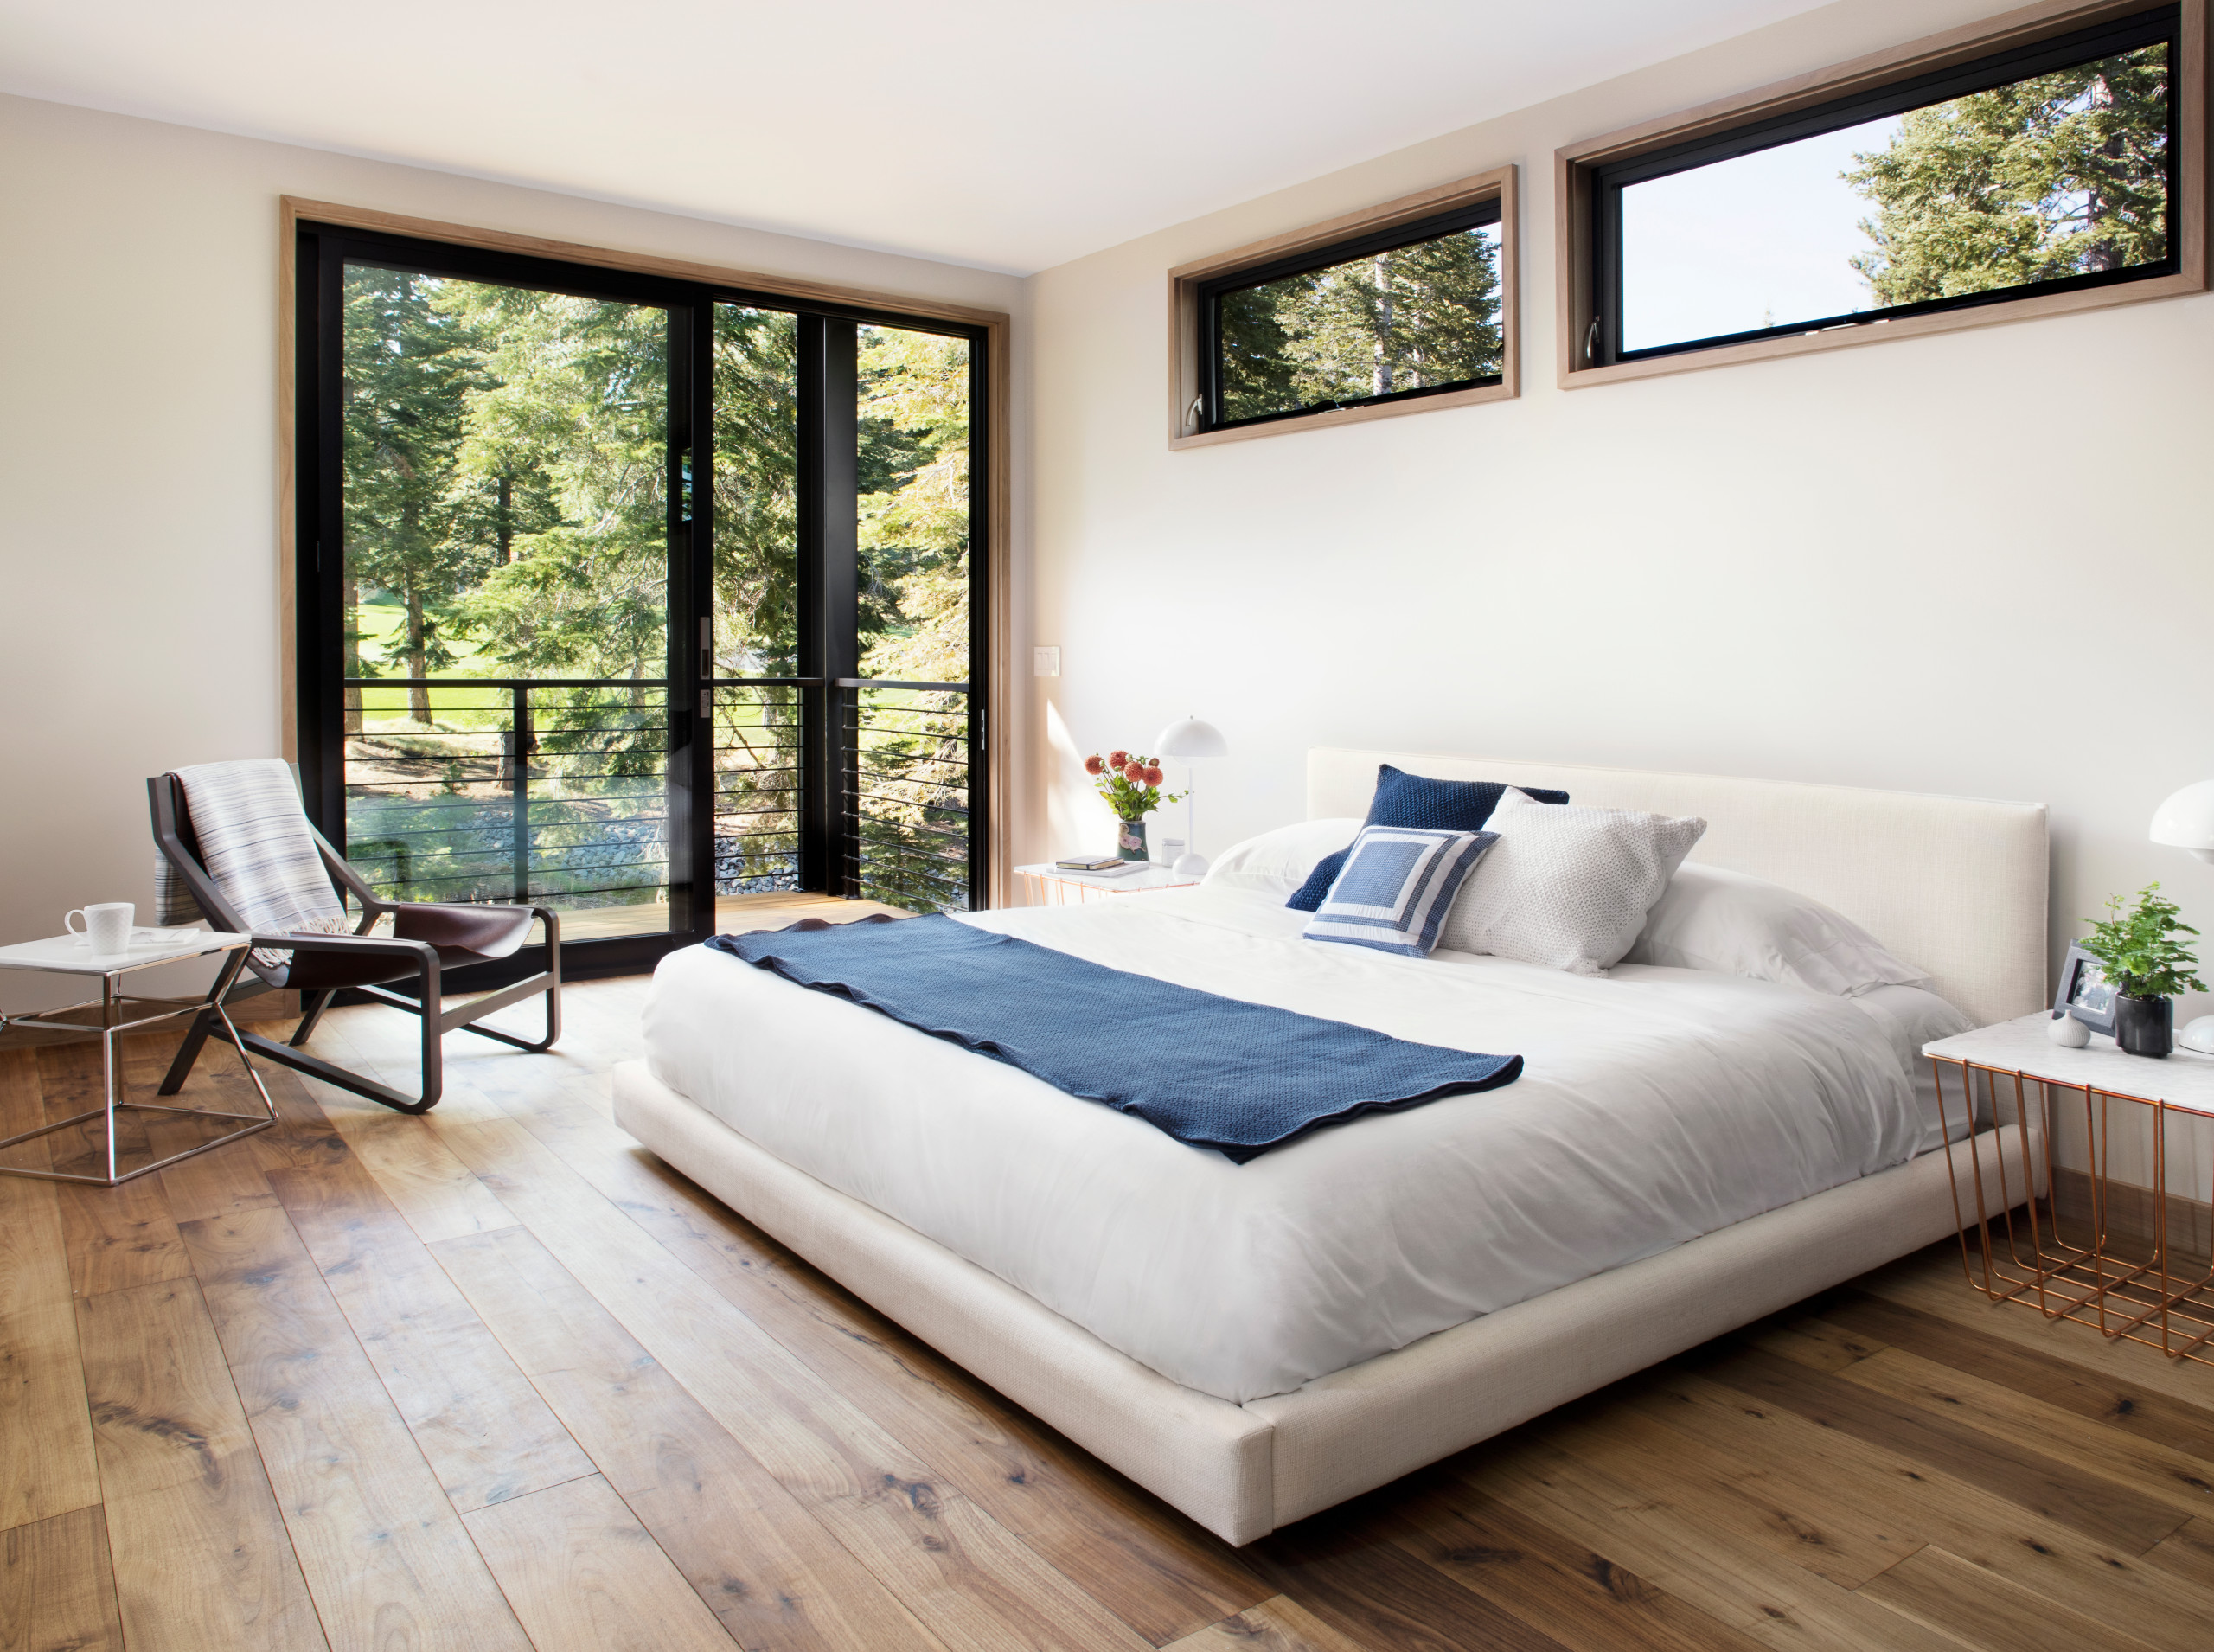 75 Beautiful Modern Bedroom Pictures Ideas July 2021 Houzz